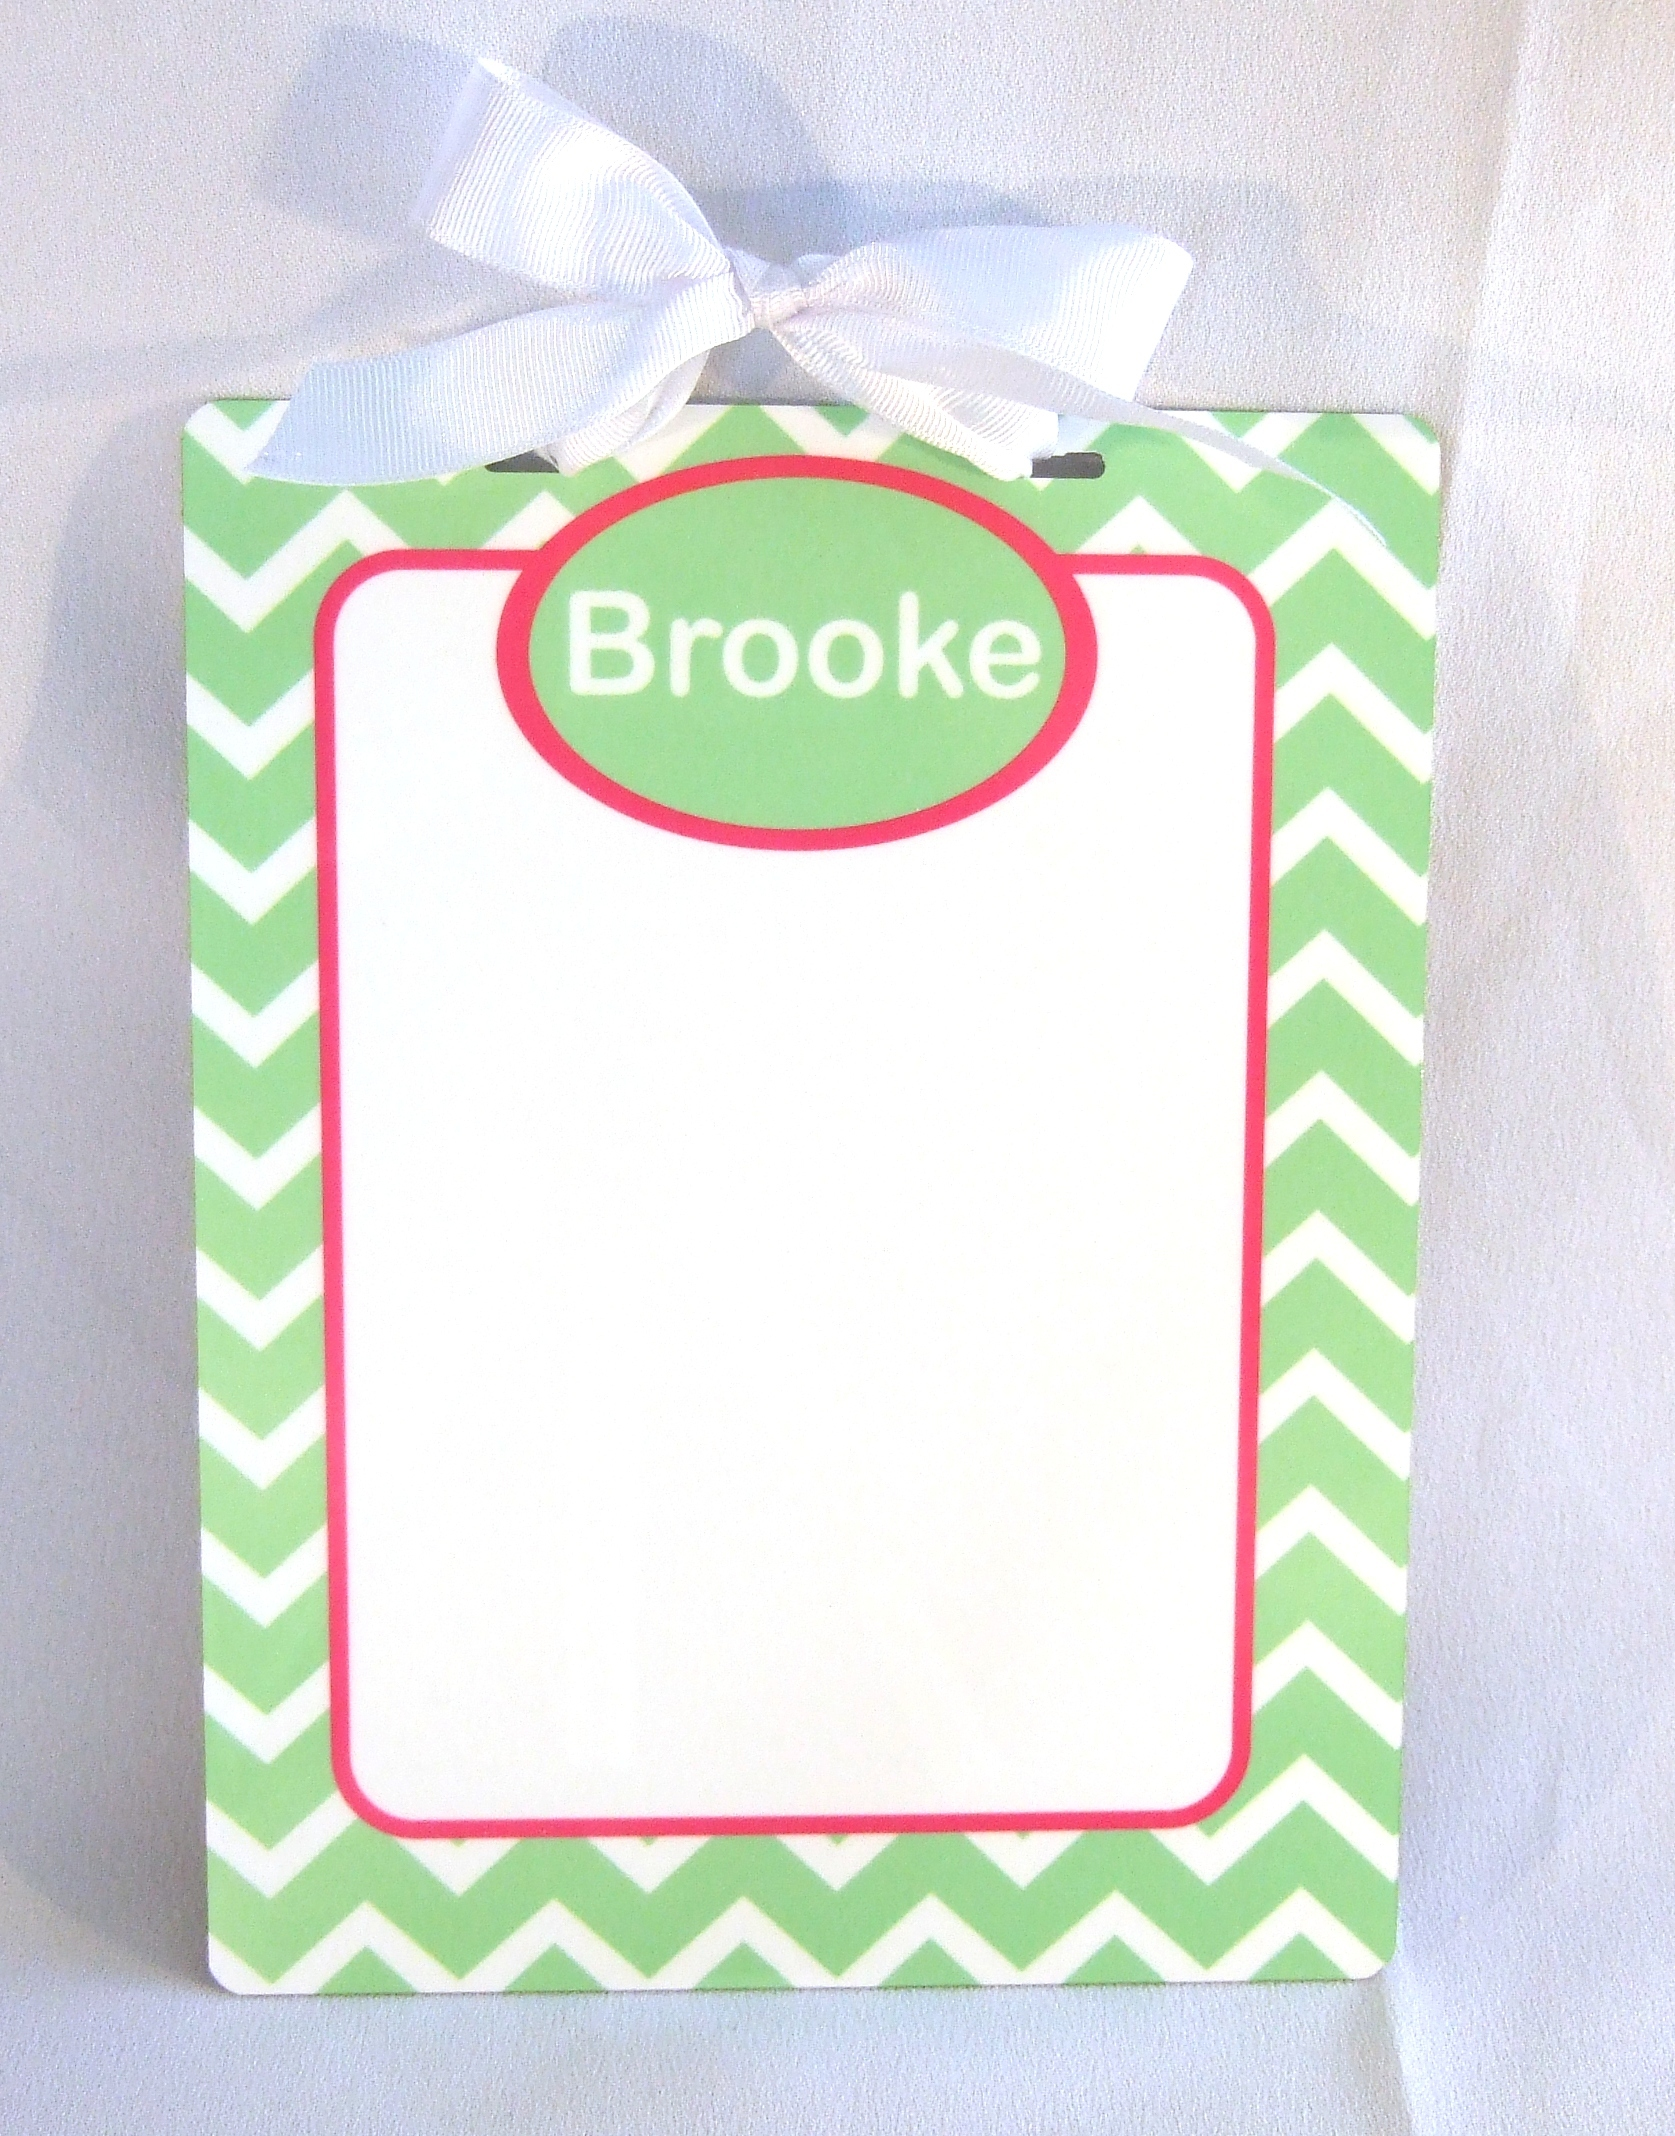 Personalized metal dry erase board with lime green and white chevron pattern and hot pink trim   DEB1005